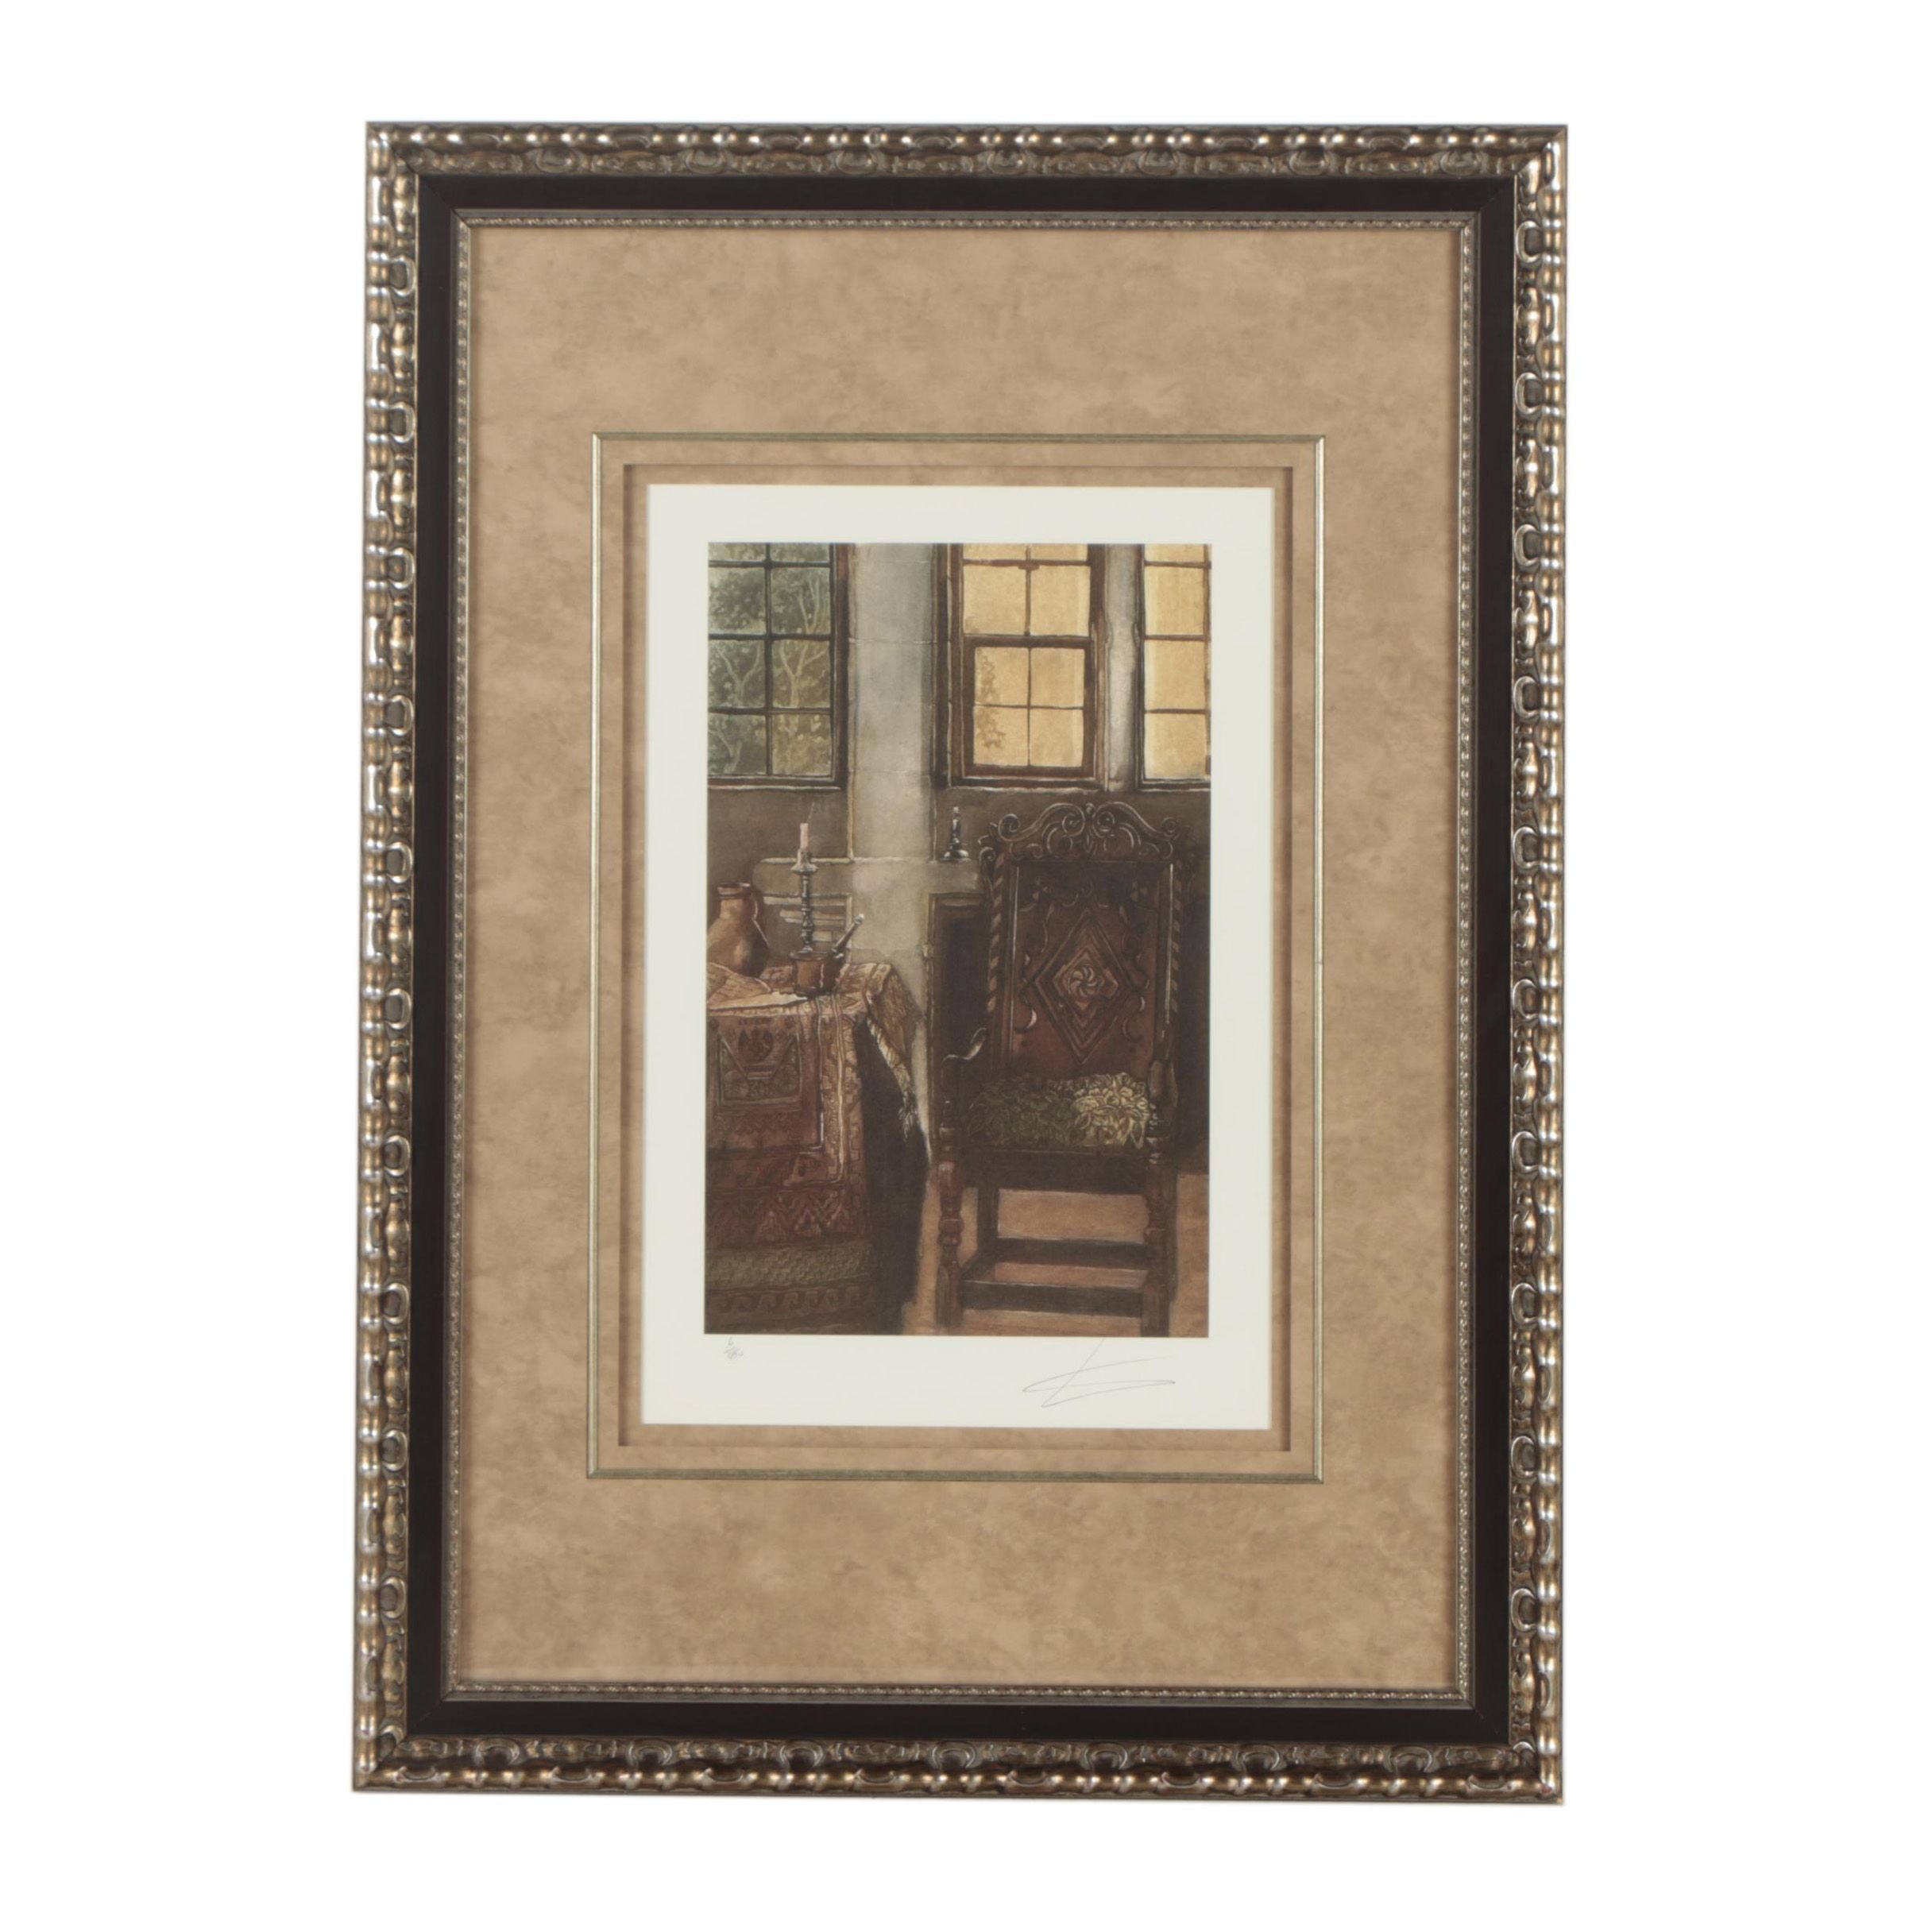 Giclee Limited Edition Reproduction Print of an Interior Scene